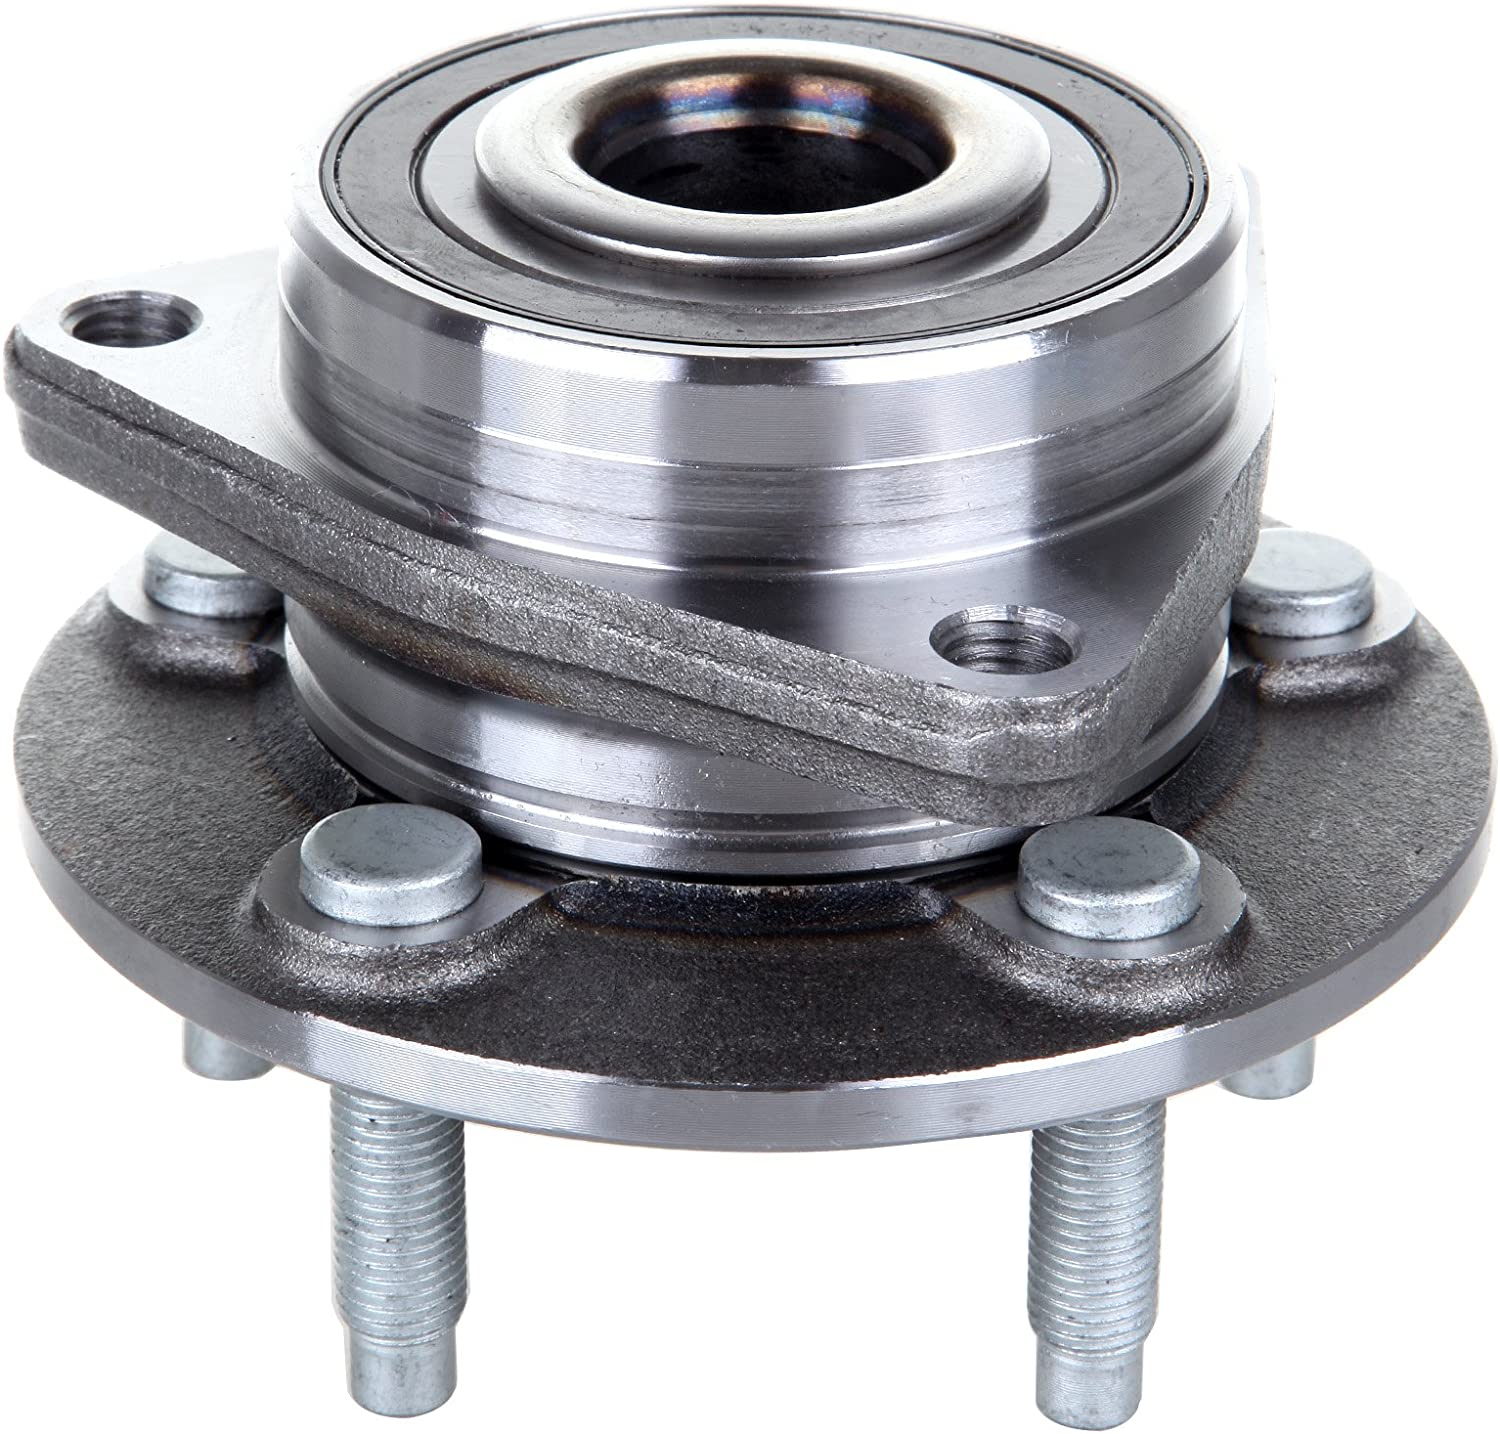 ECCPP Front Wheel Hub Bearing Assembly 5 Lugs for 2011-2015 Chevy Cruze Compatible with 513315